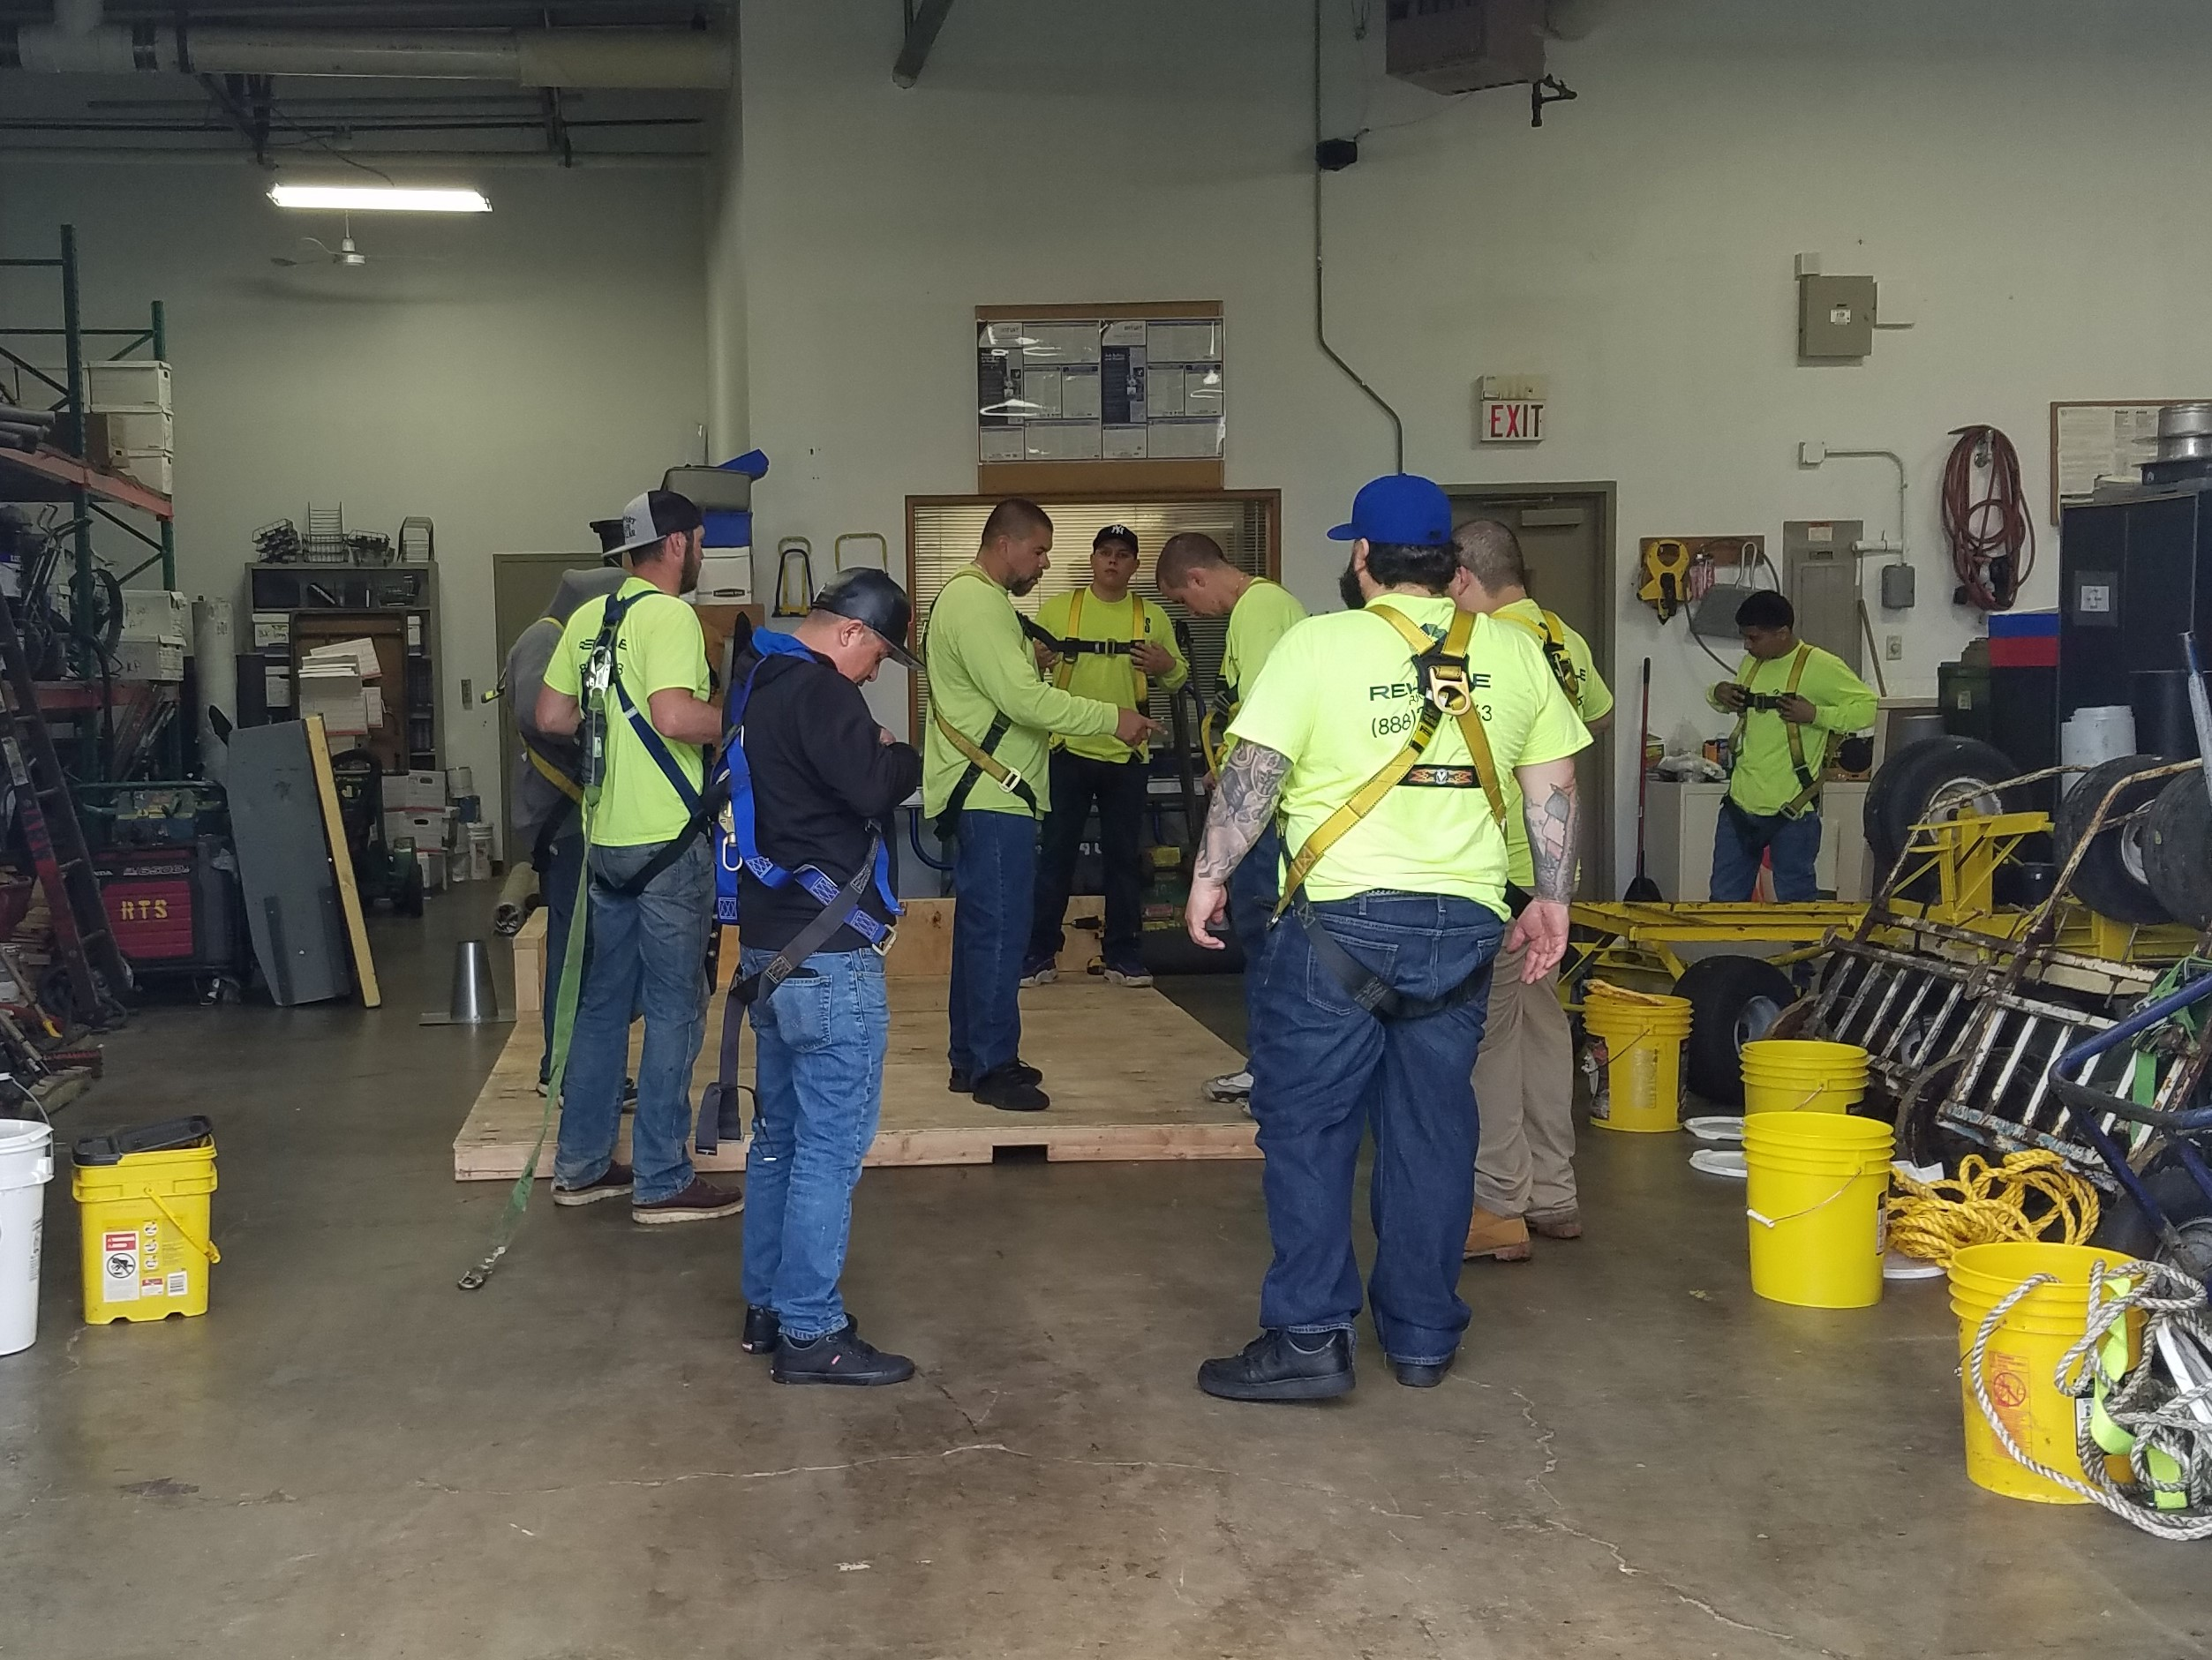 Safety harness training5-9-2019